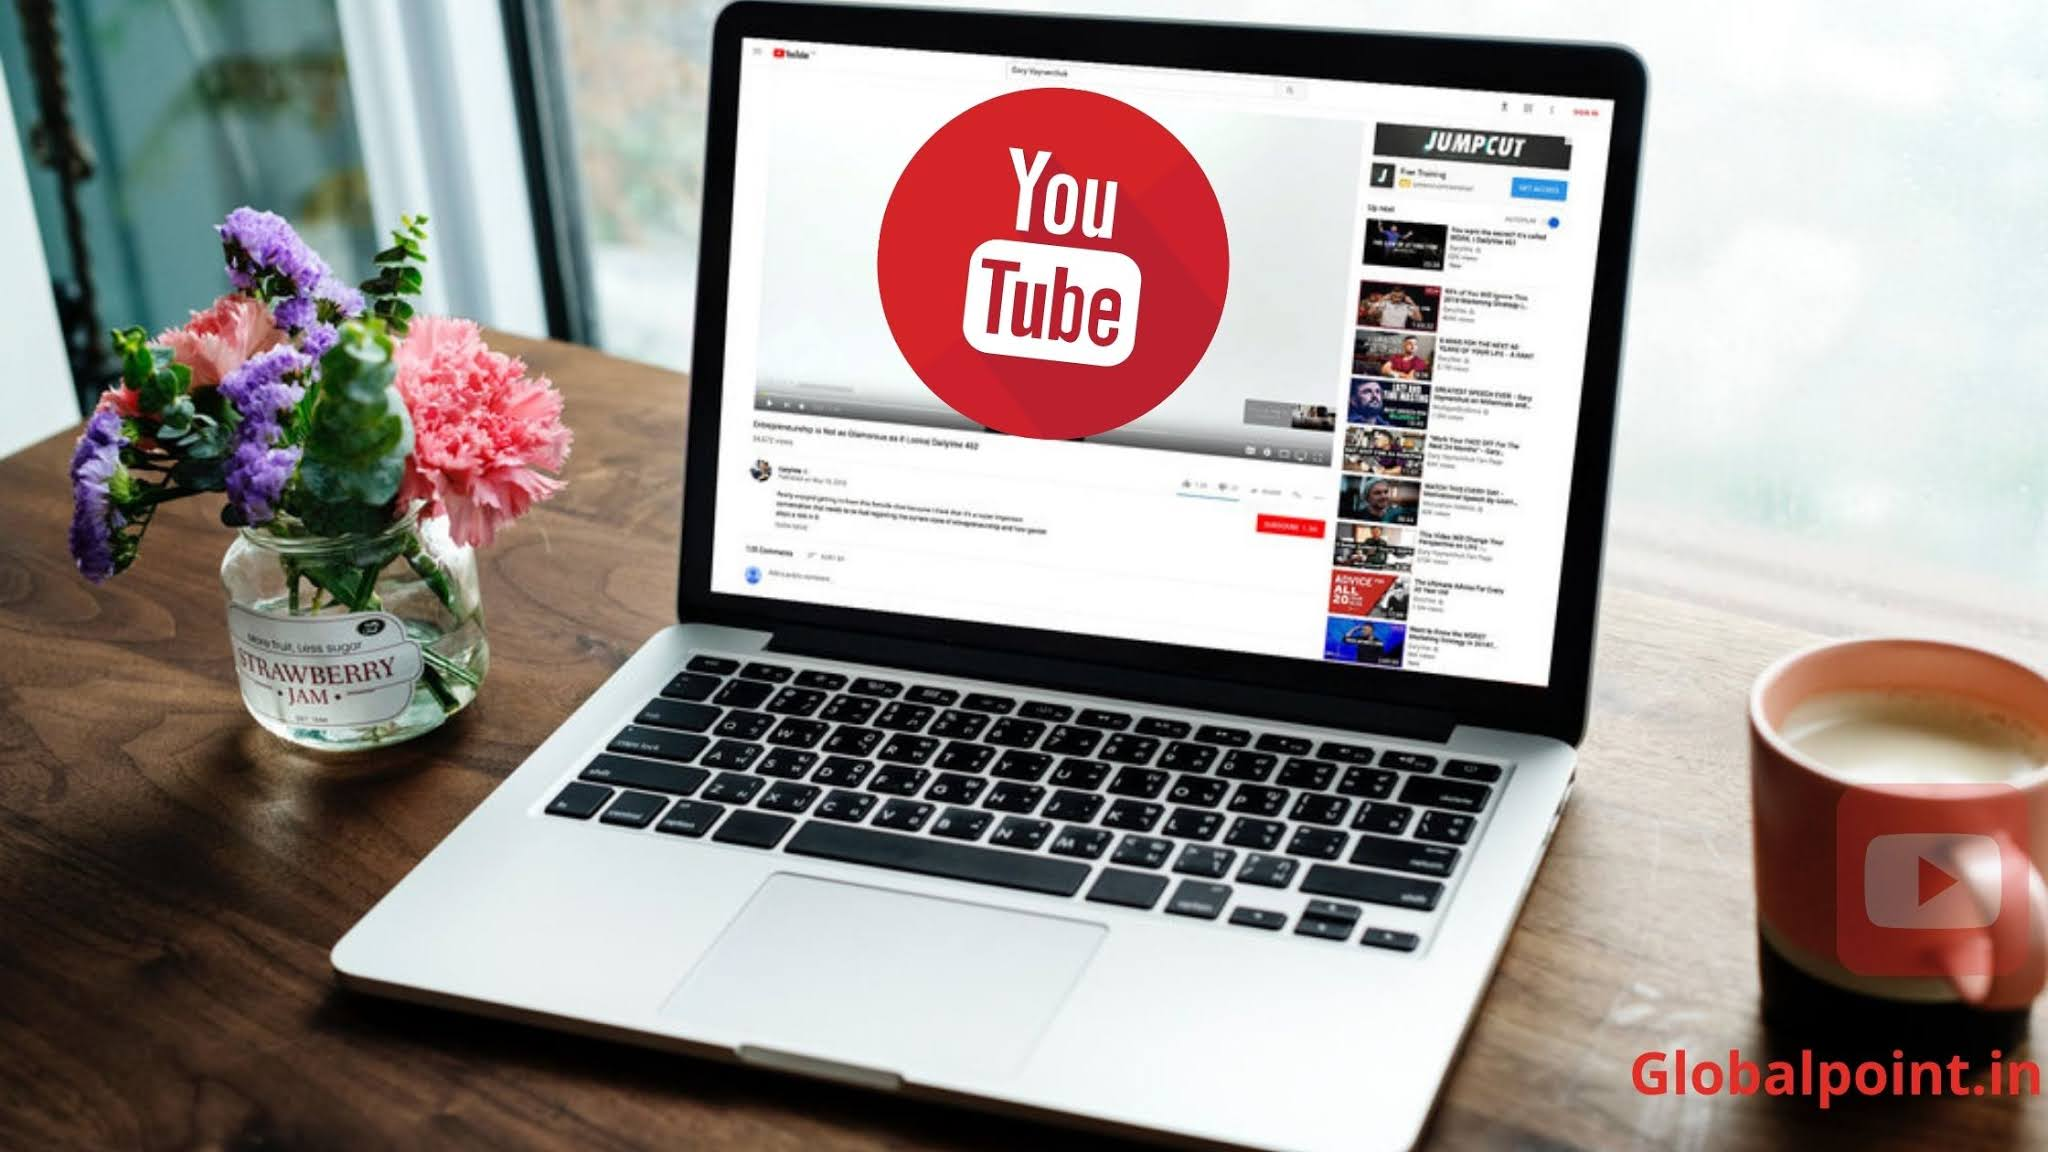 Download videos from YouTube using SS